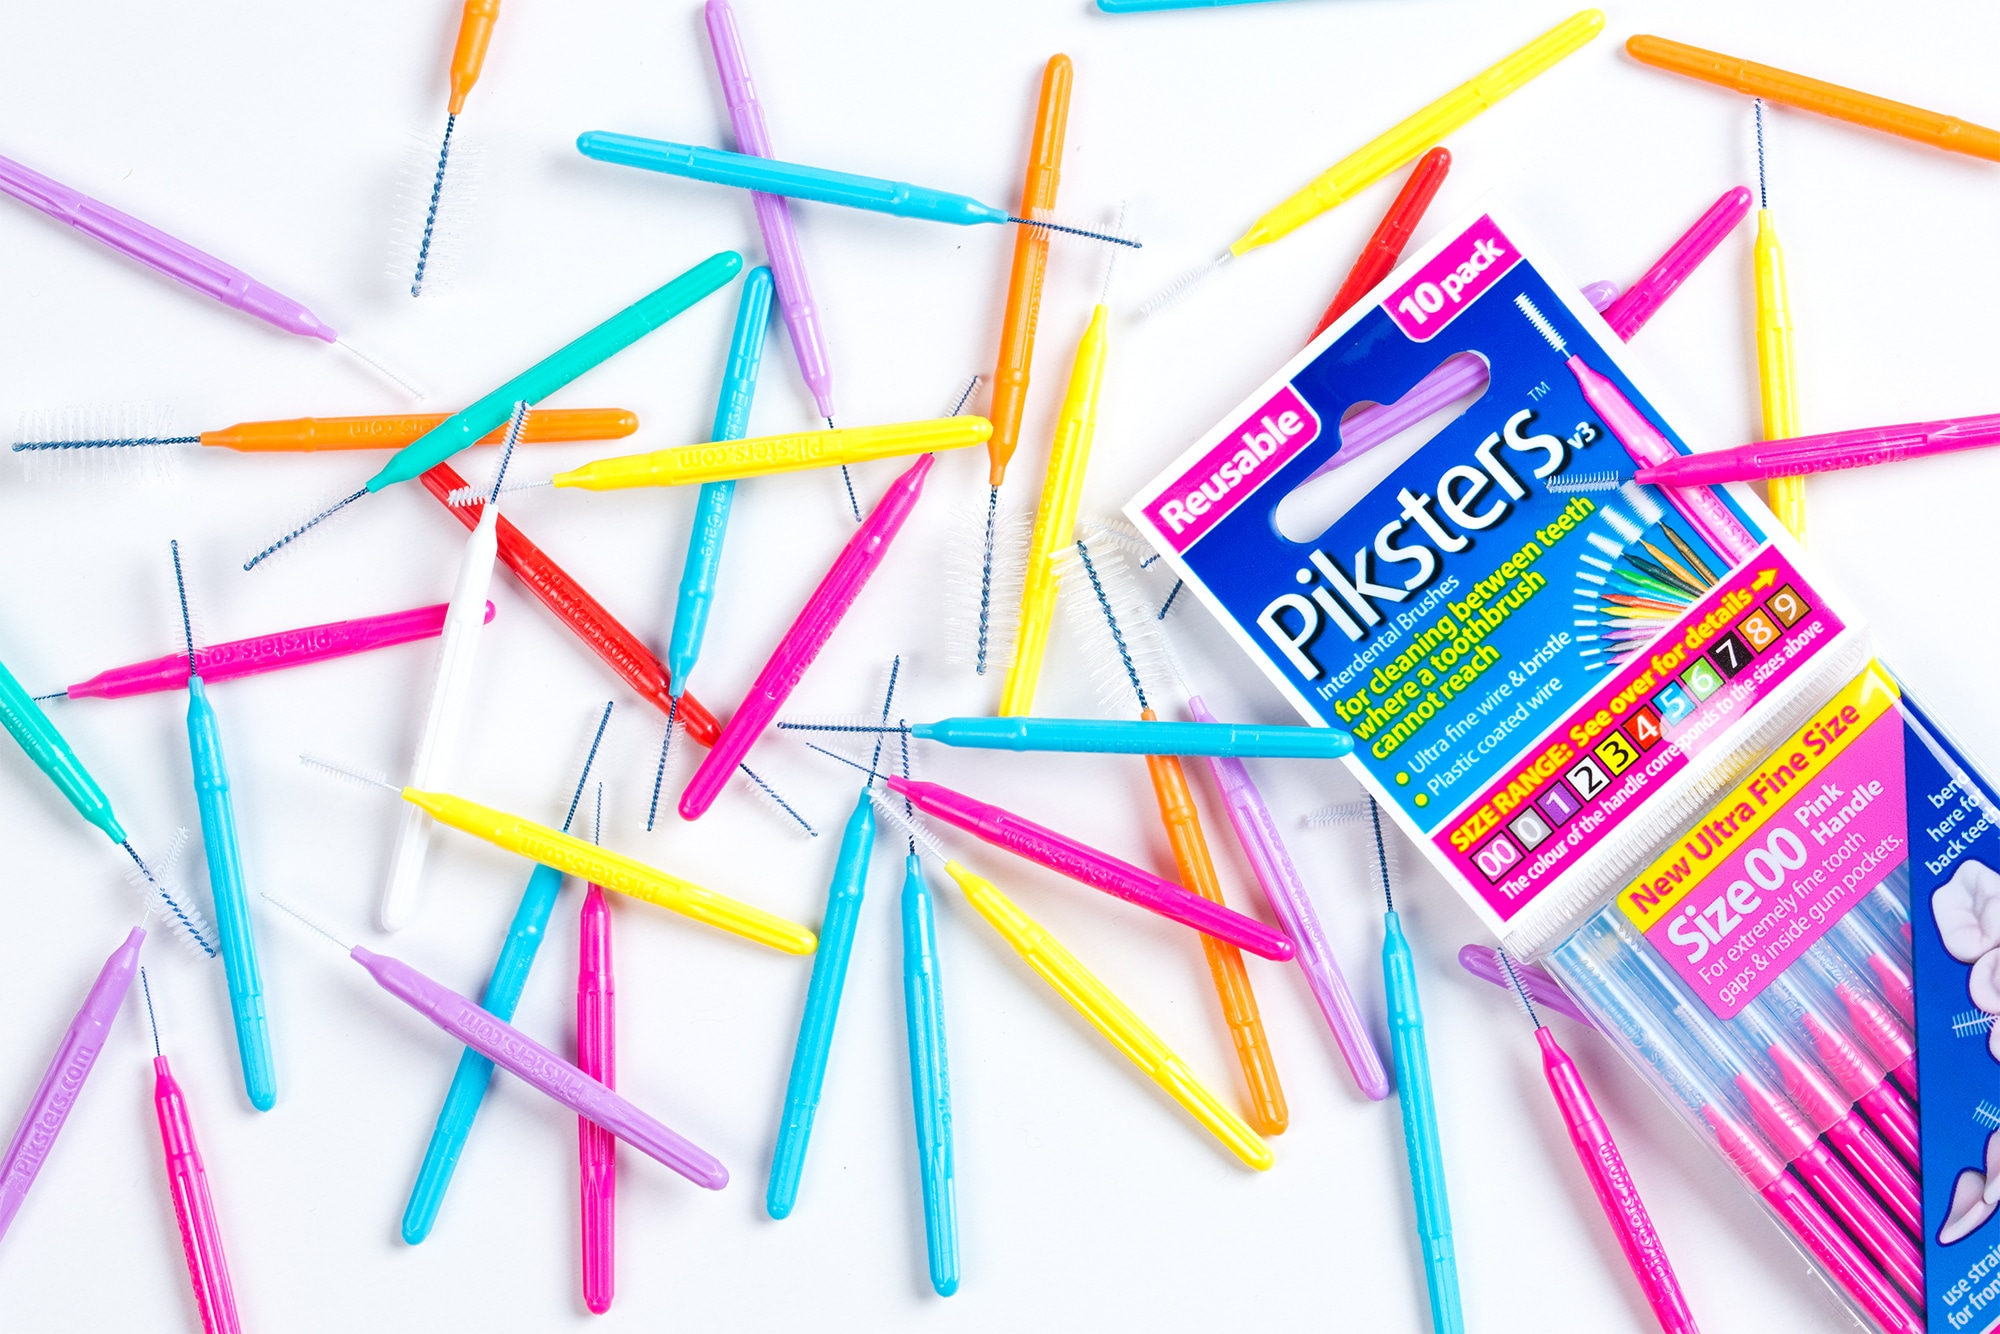 About Piksters Interdental Brush